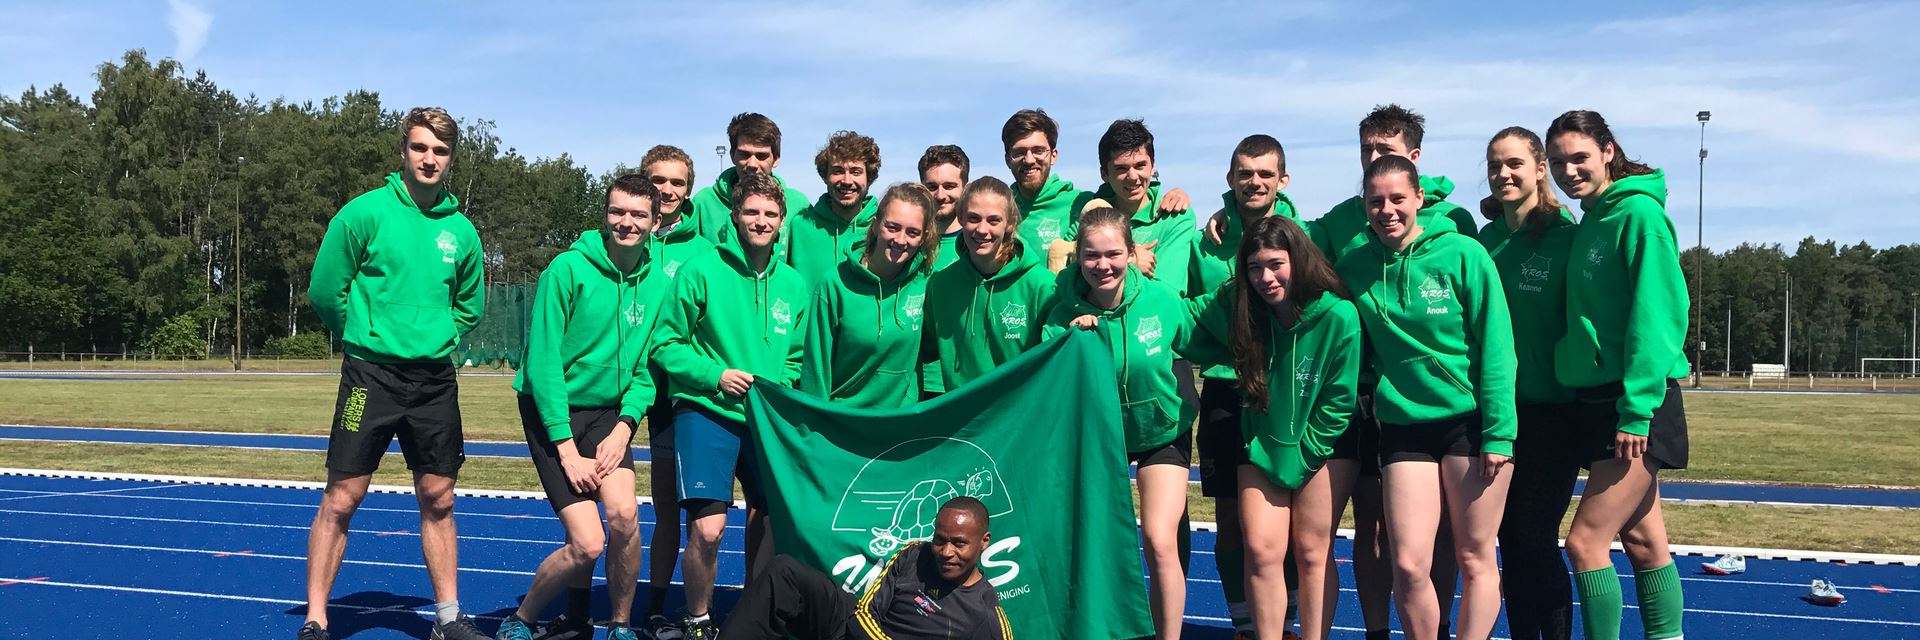 Join Student Sports Maastricht!